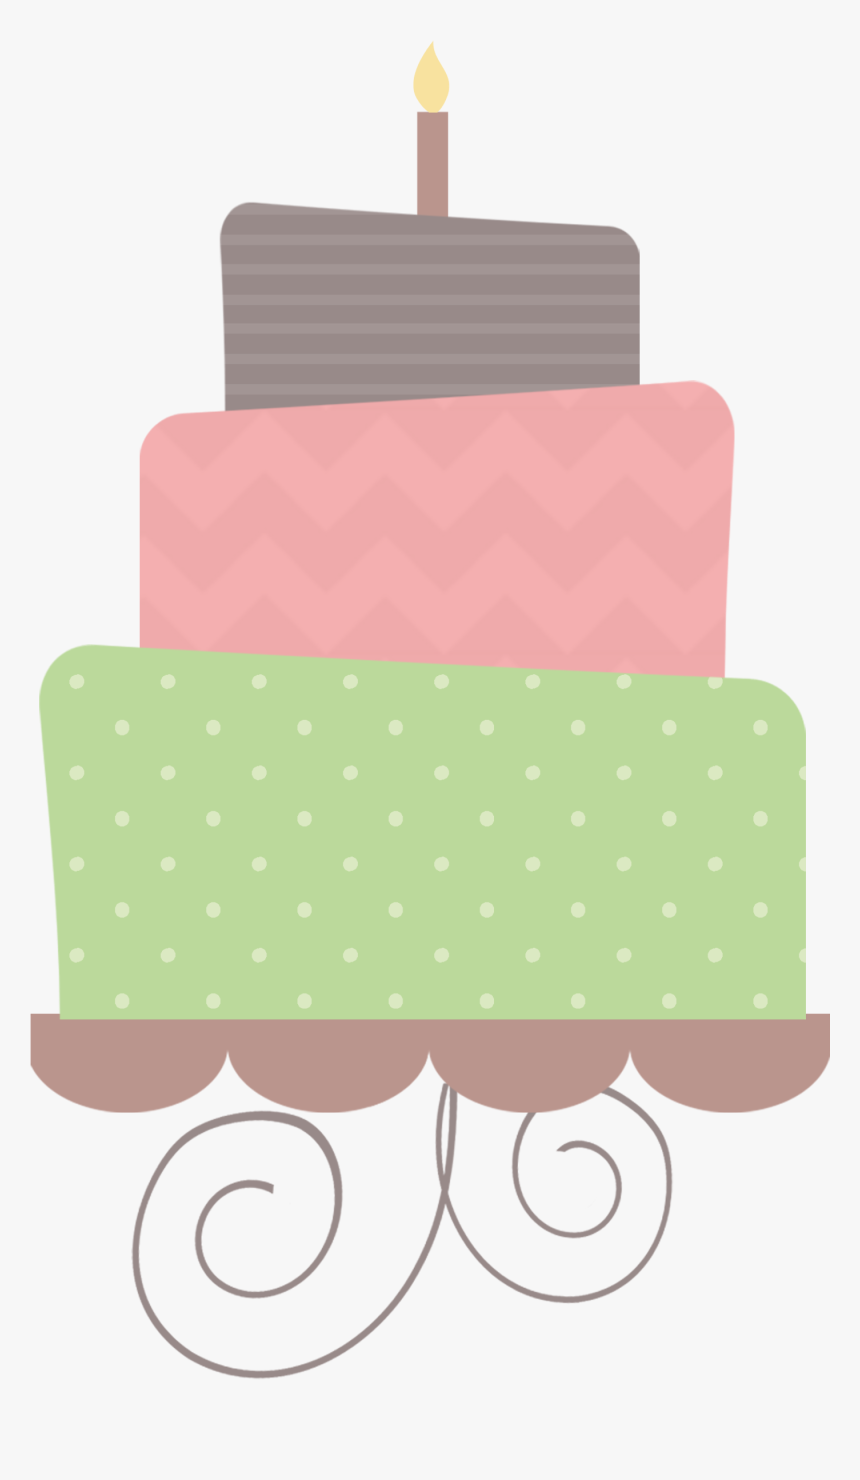 Phenomenal Download For Free Cake Png In High Resolution Birthday Cake Funny Birthday Cards Online Elaedamsfinfo